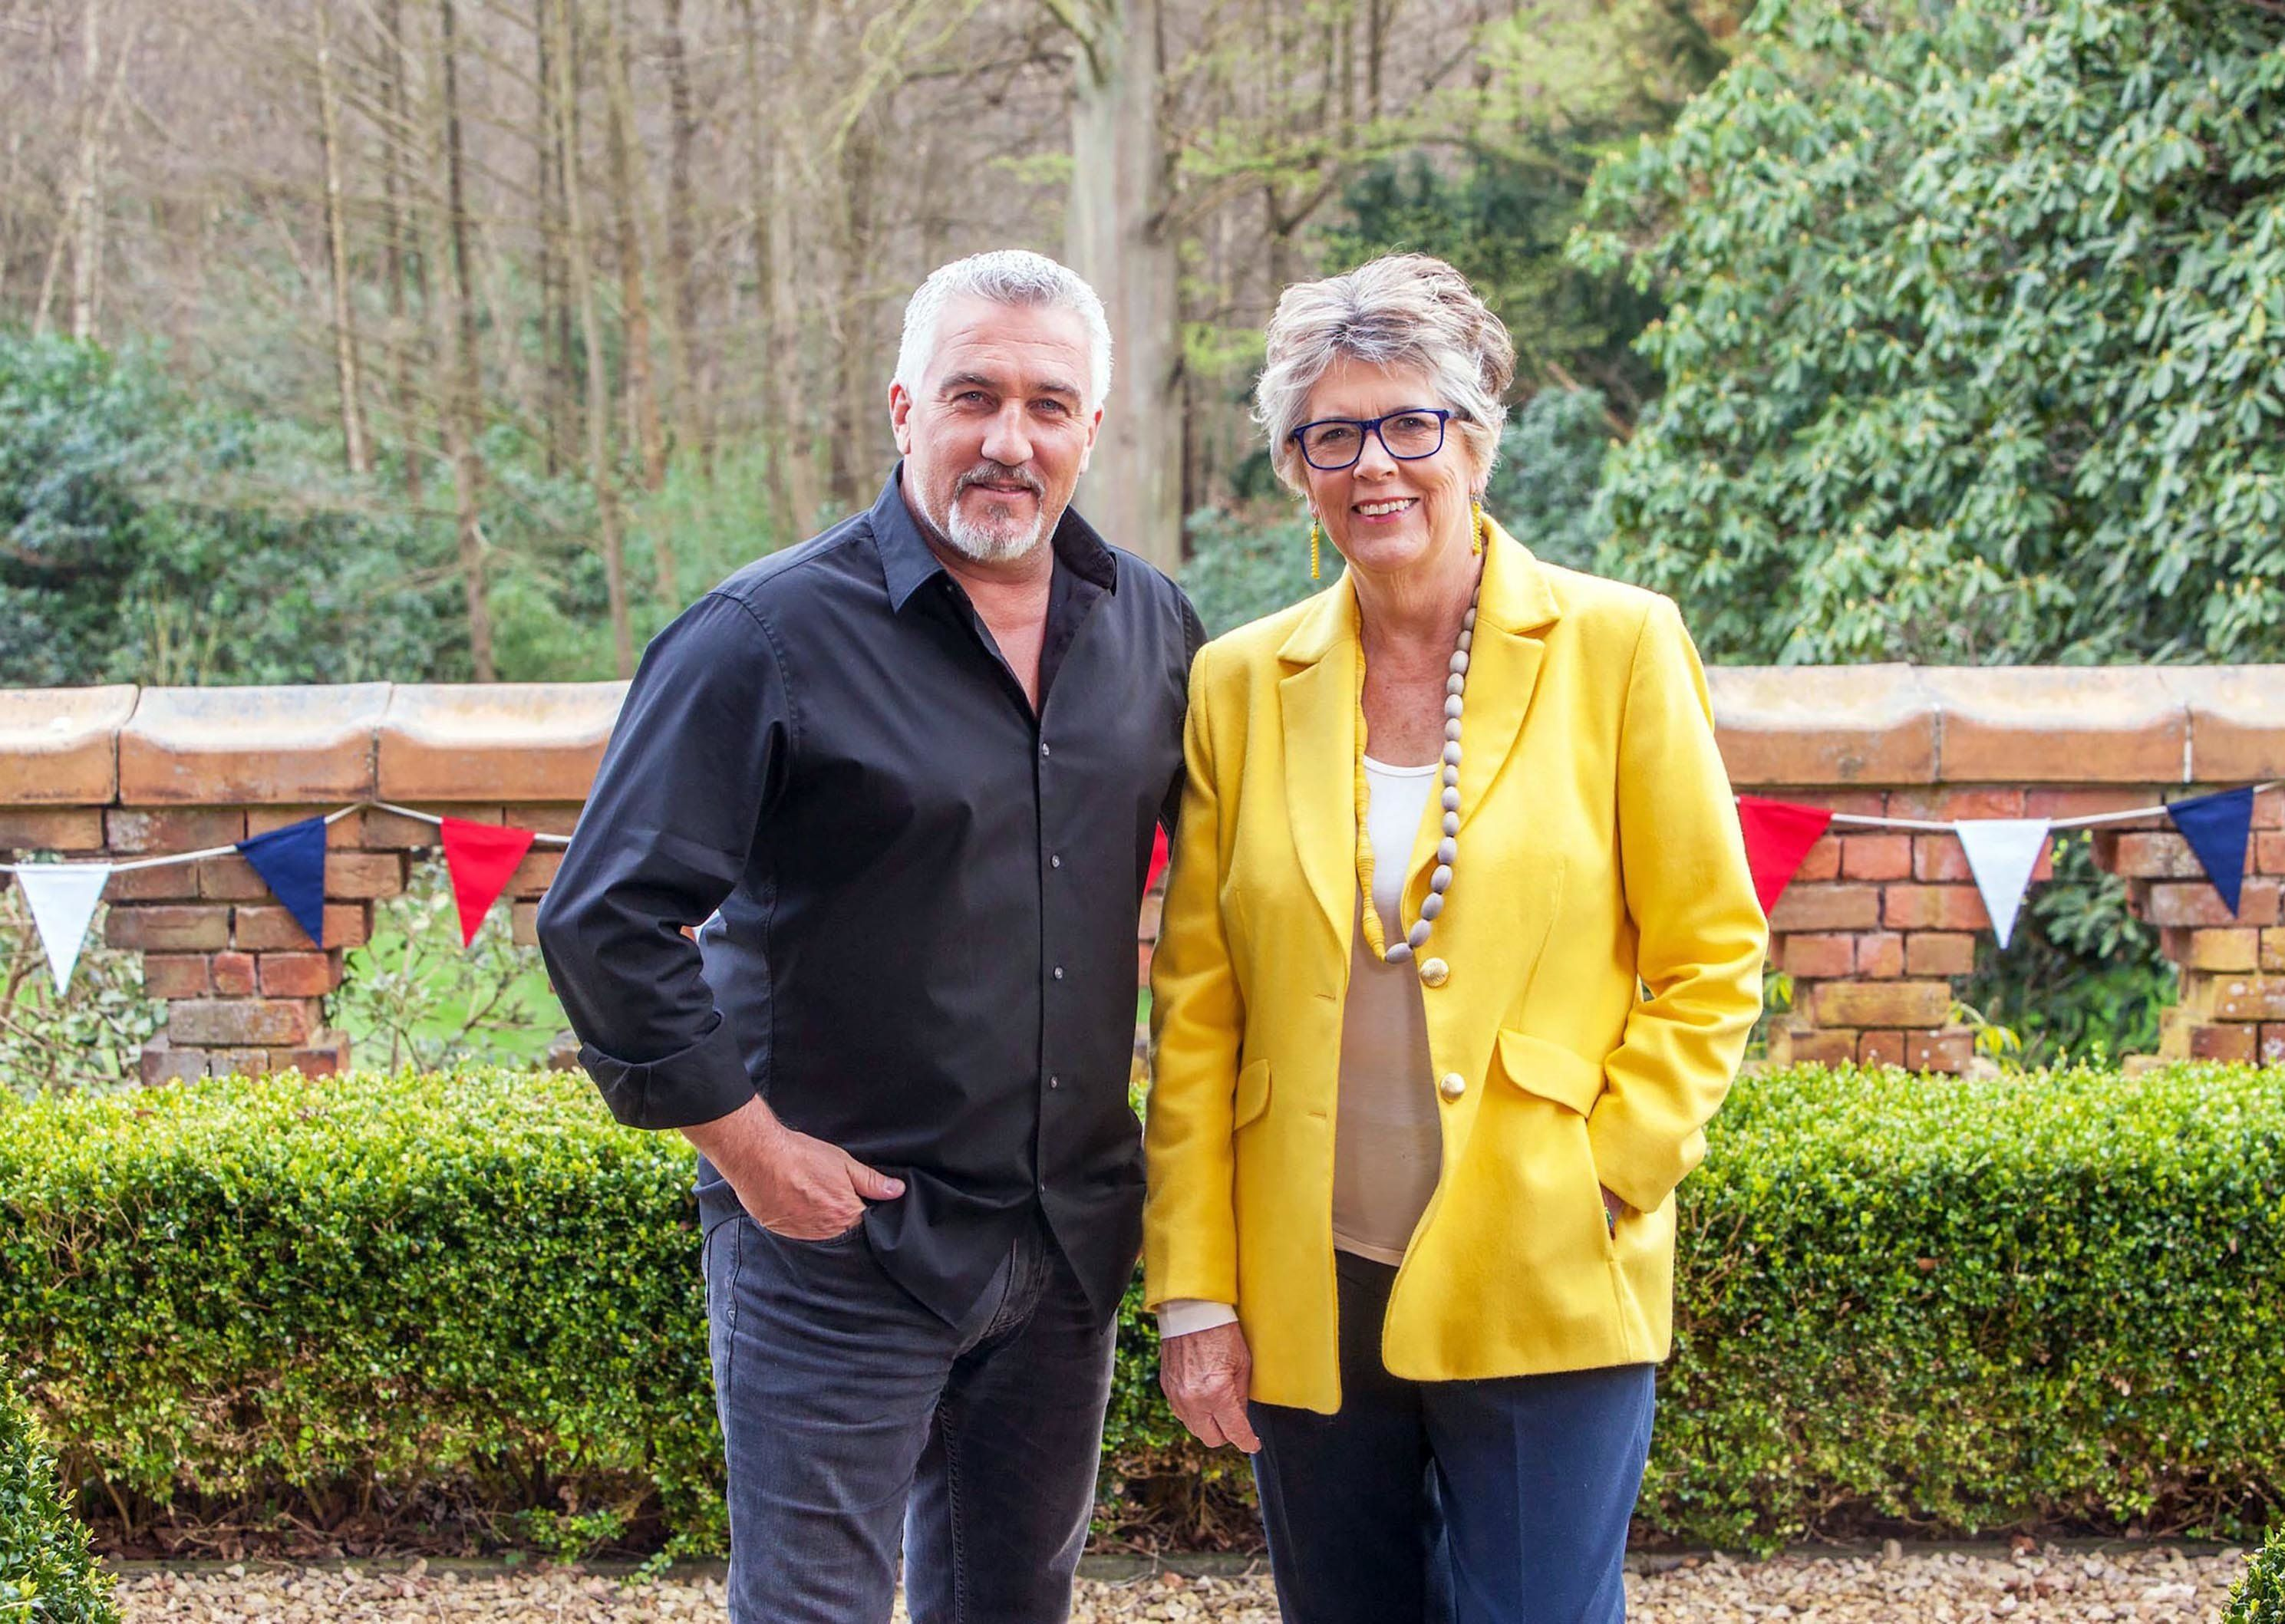 'Bake Off' Judge Prue Leith Reveals Why She Didn't Have A Sneak Peek Of The New Series